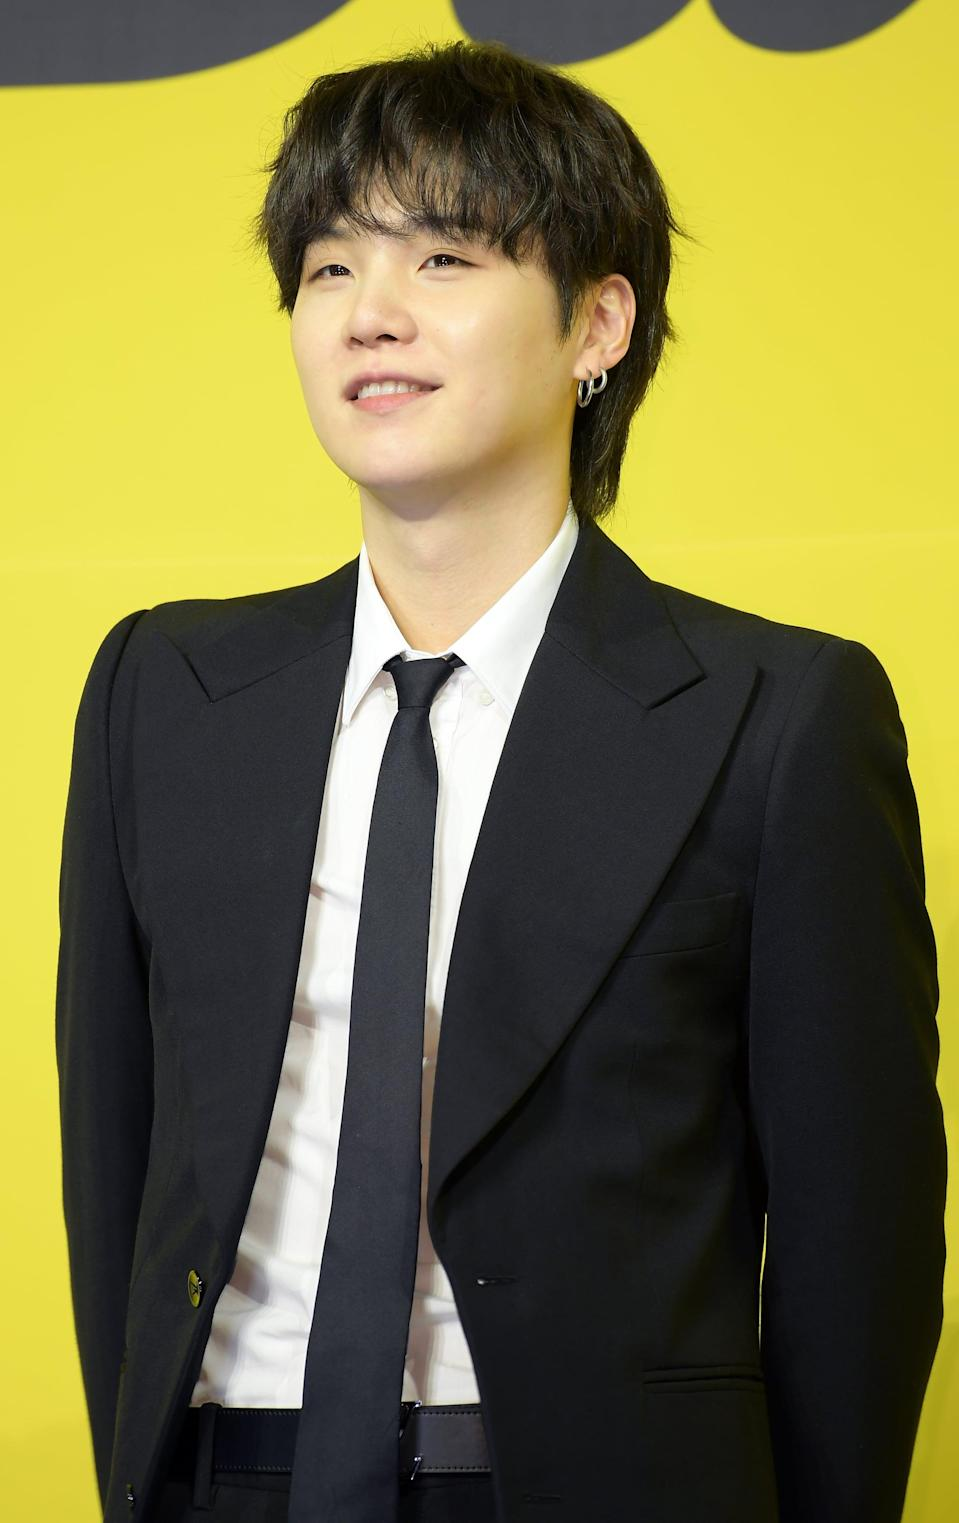 <p>Suga doesn't have any tattoos yet.</p>